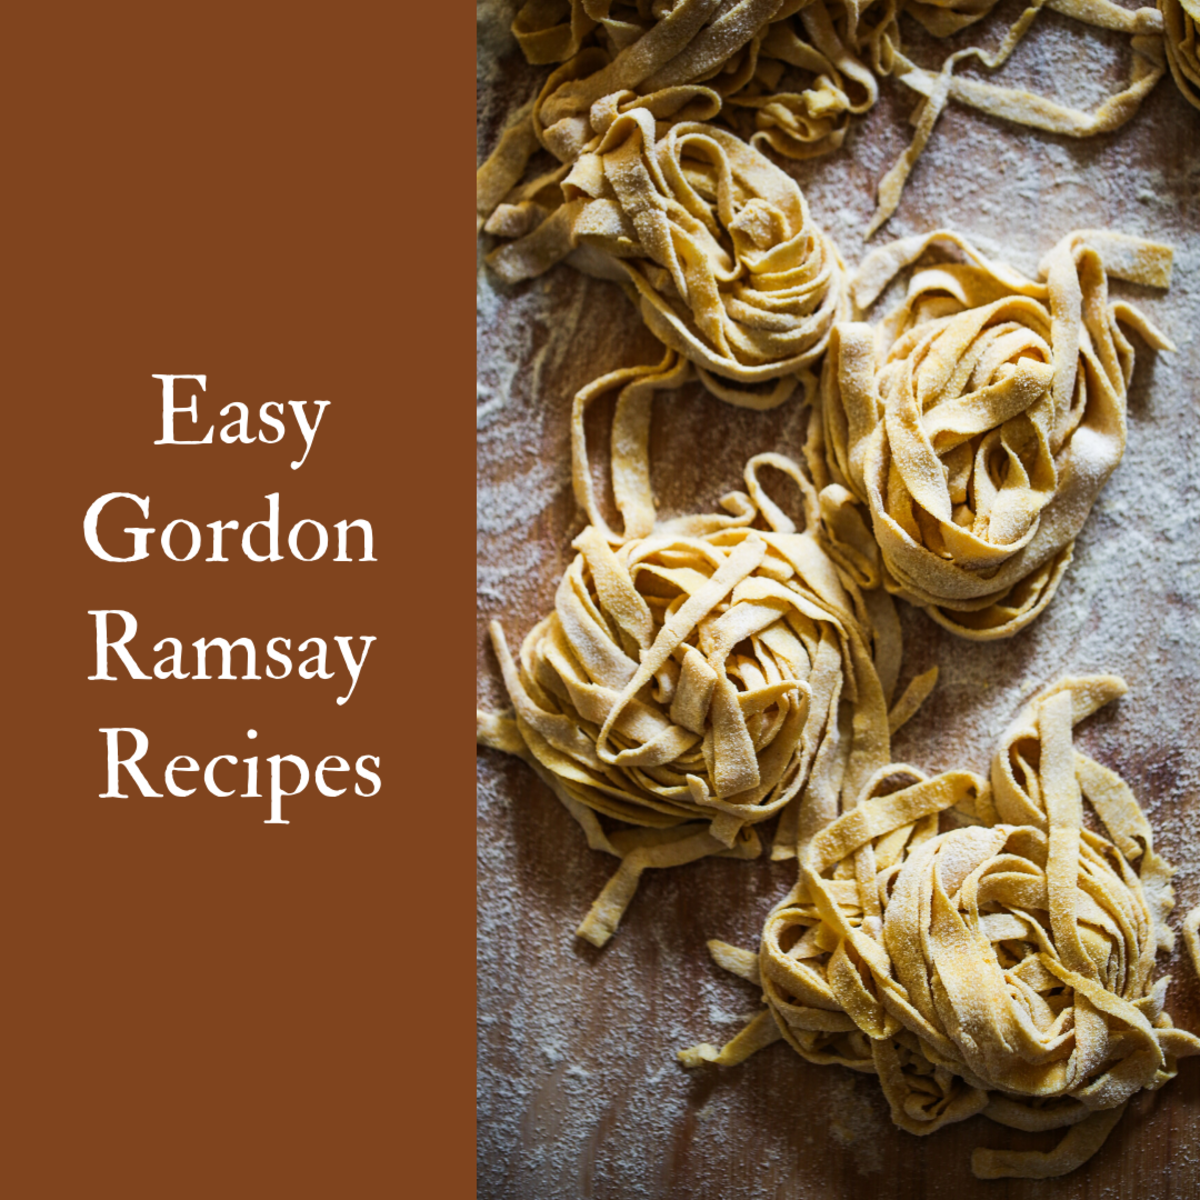 Gordon Ramsay Recipes That Are Easy to